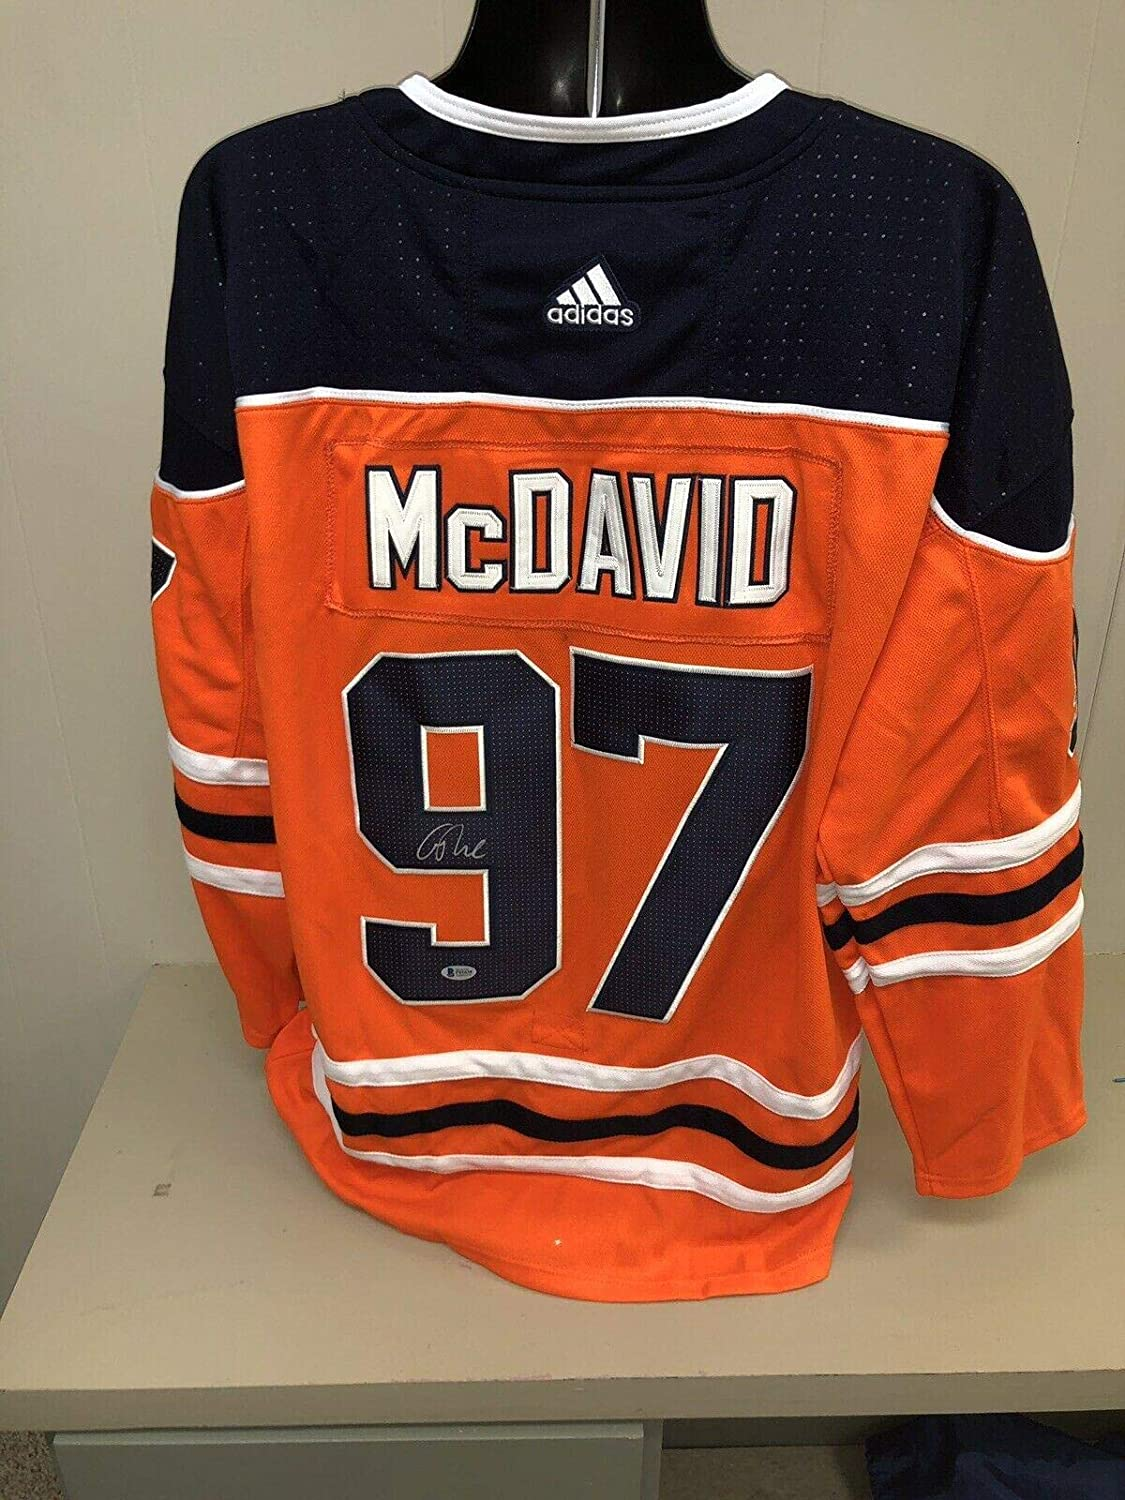 Conor Mcdavid Signed Edmonton Oilers Jersey Beckett Bas - Beckett Authentication - Autographed NHL Jerseys